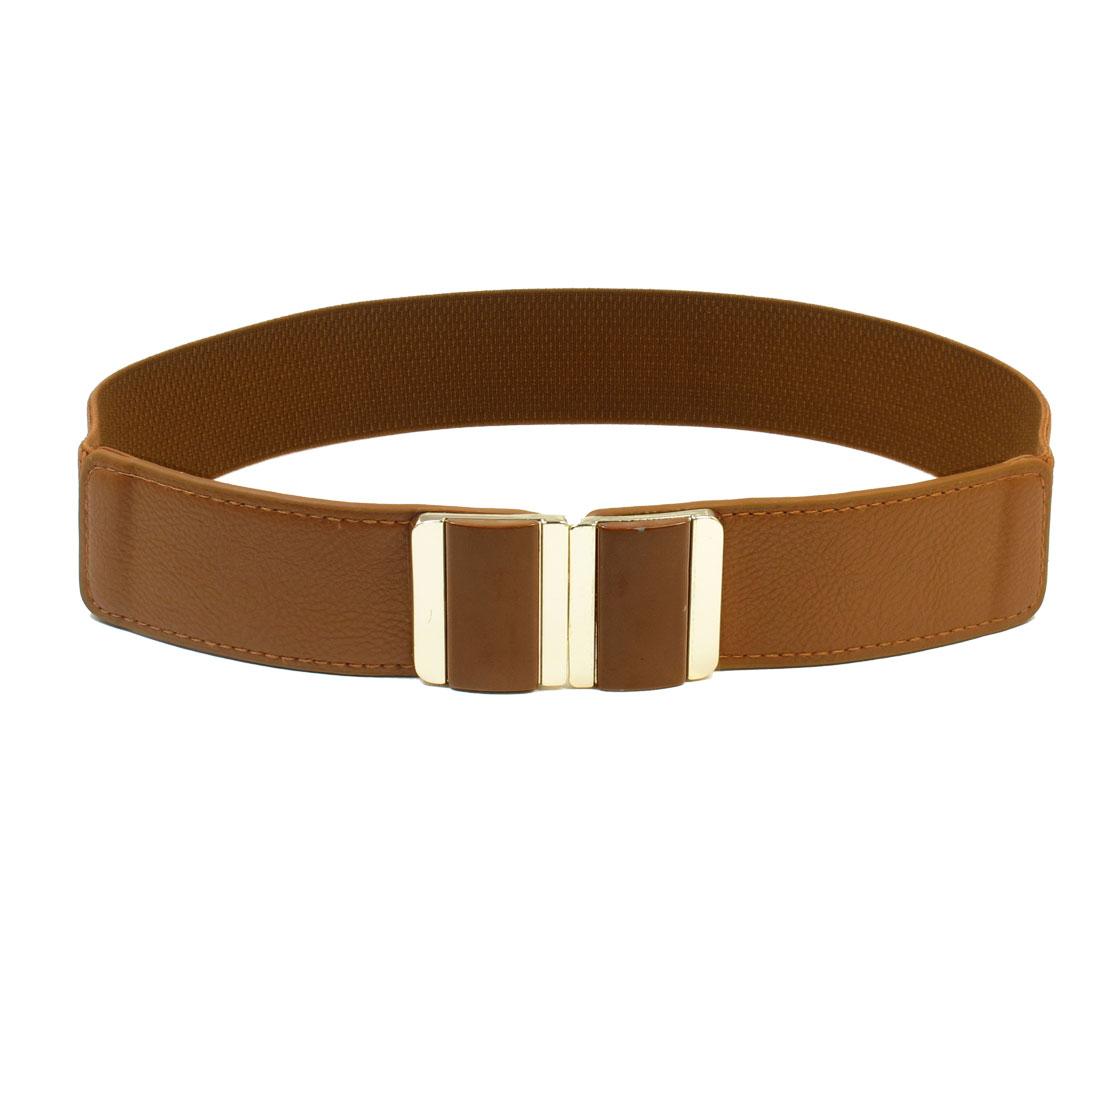 Brown Dual Retangle Shape Waistbelt Cinch Belt Dress Ornament for Women